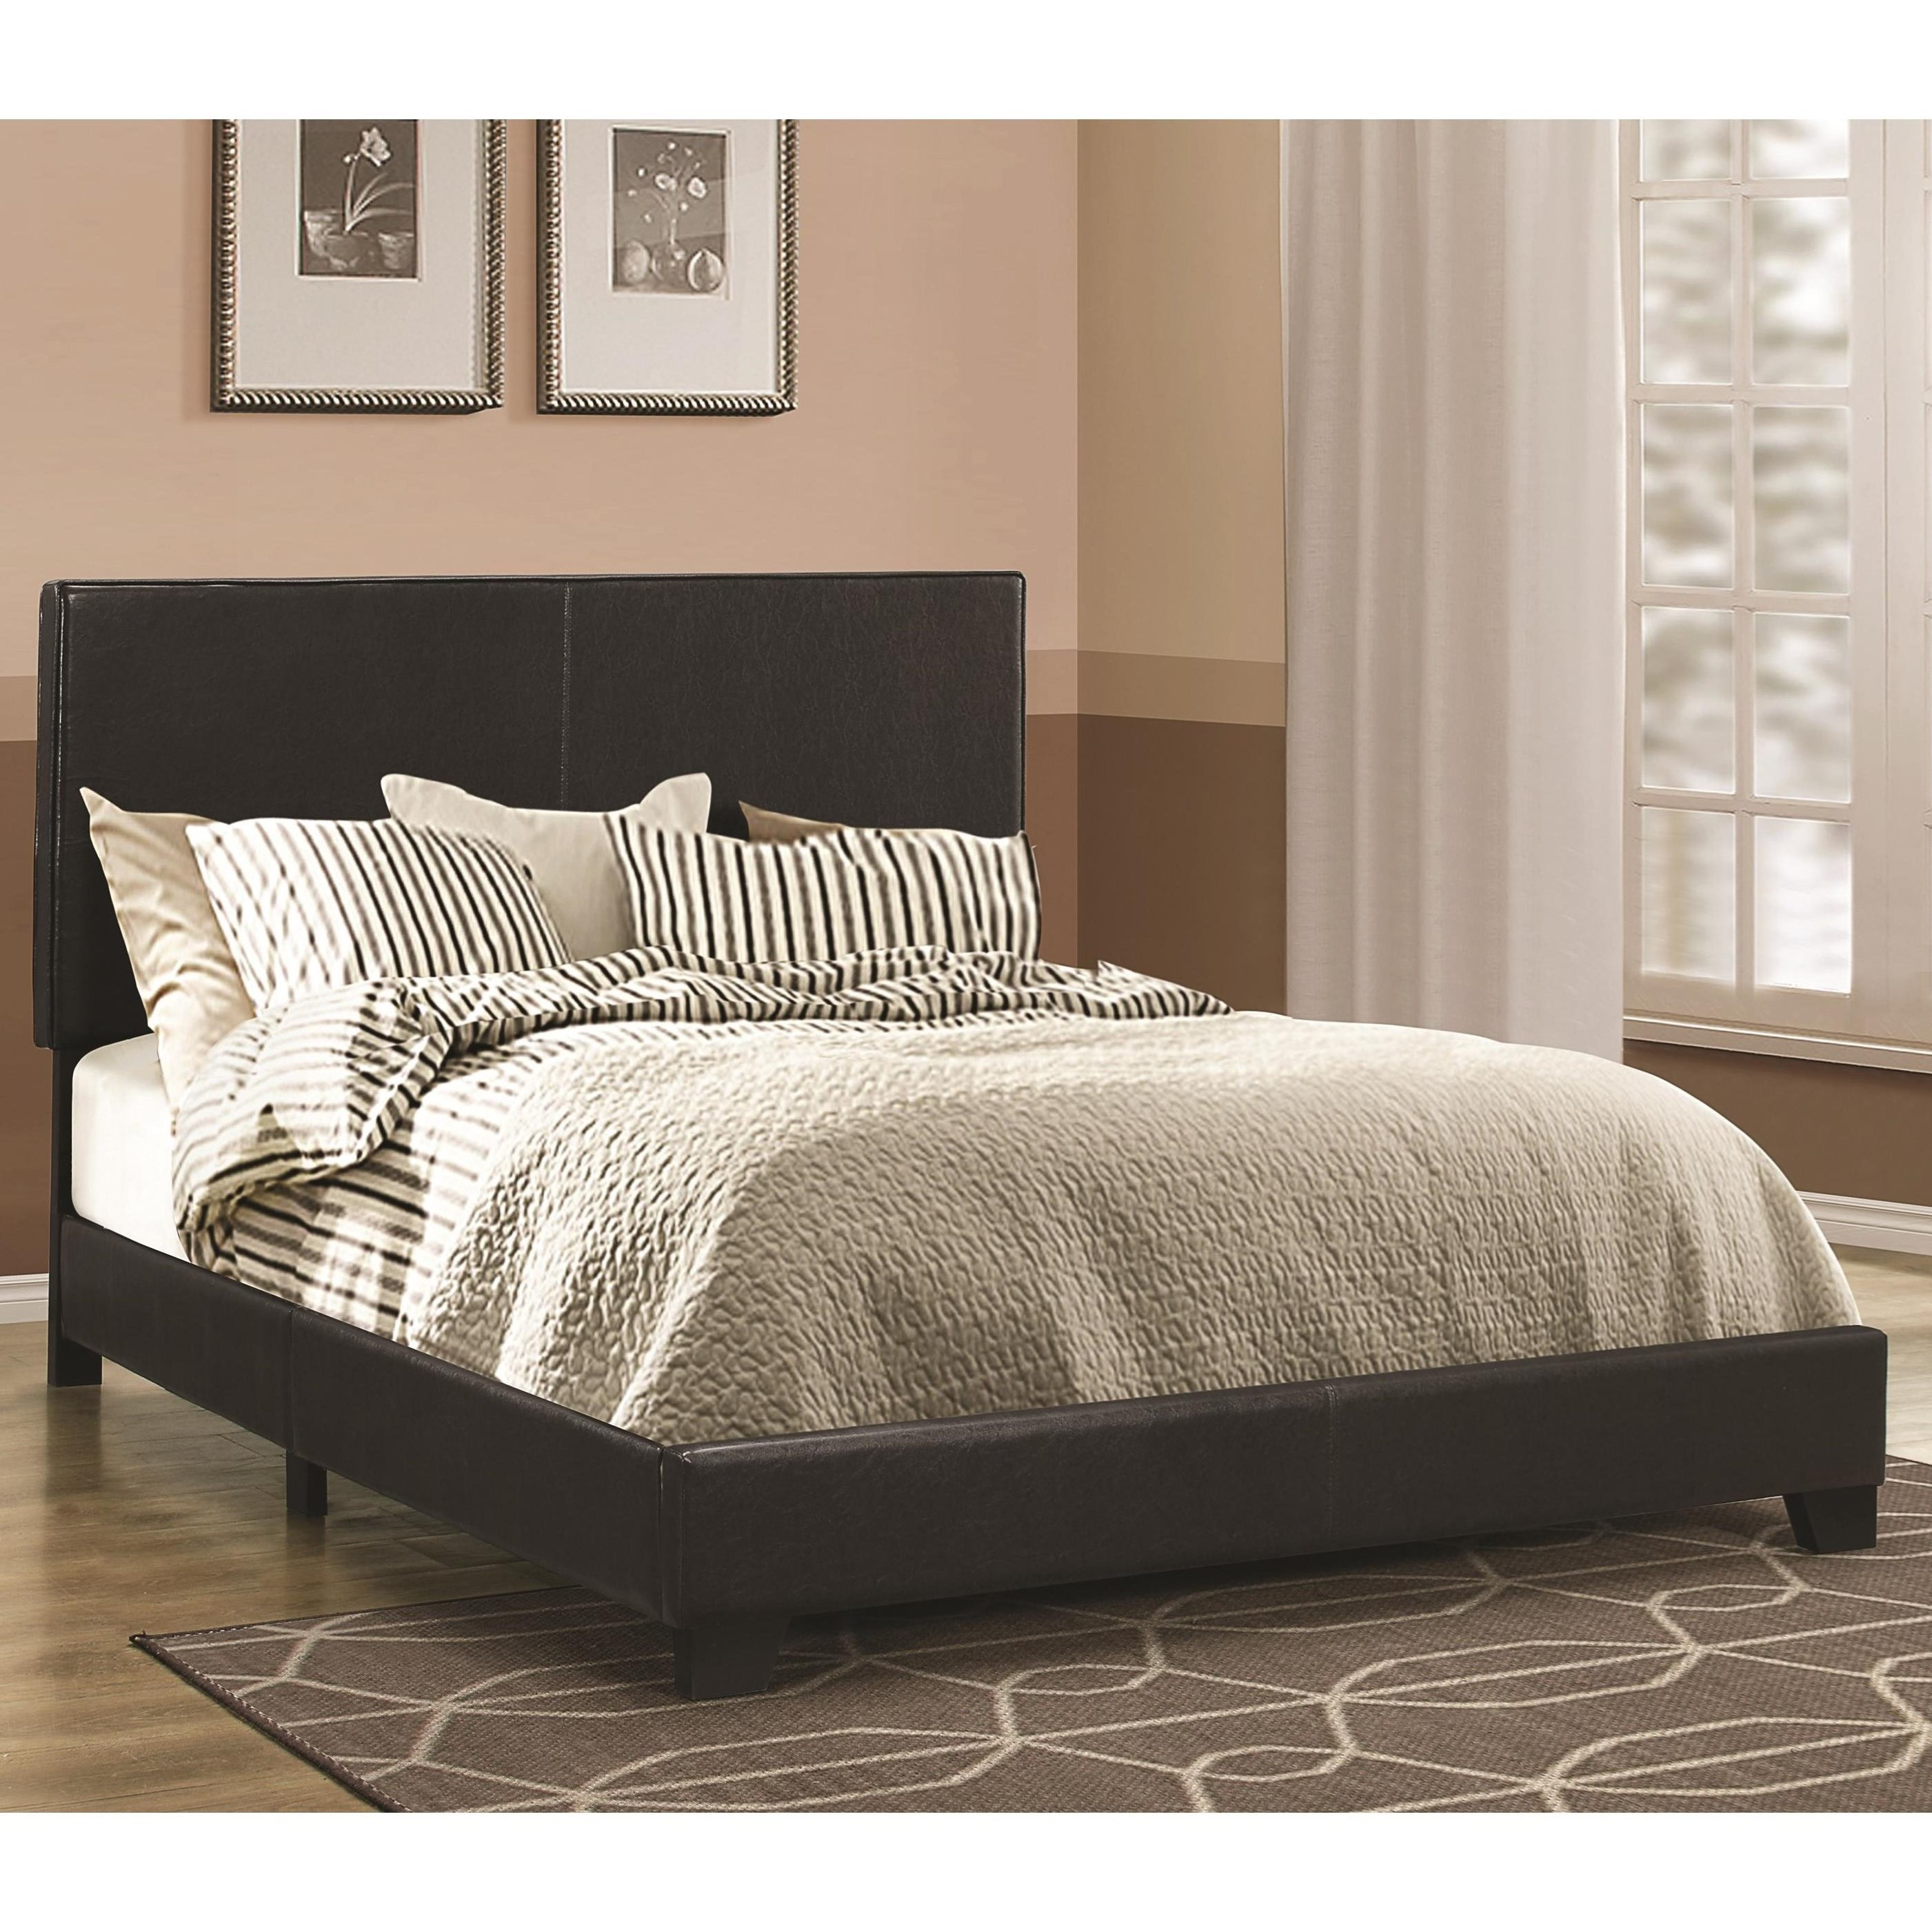 Dorian Black California King Bed by Coaster at Northeast Factory Direct